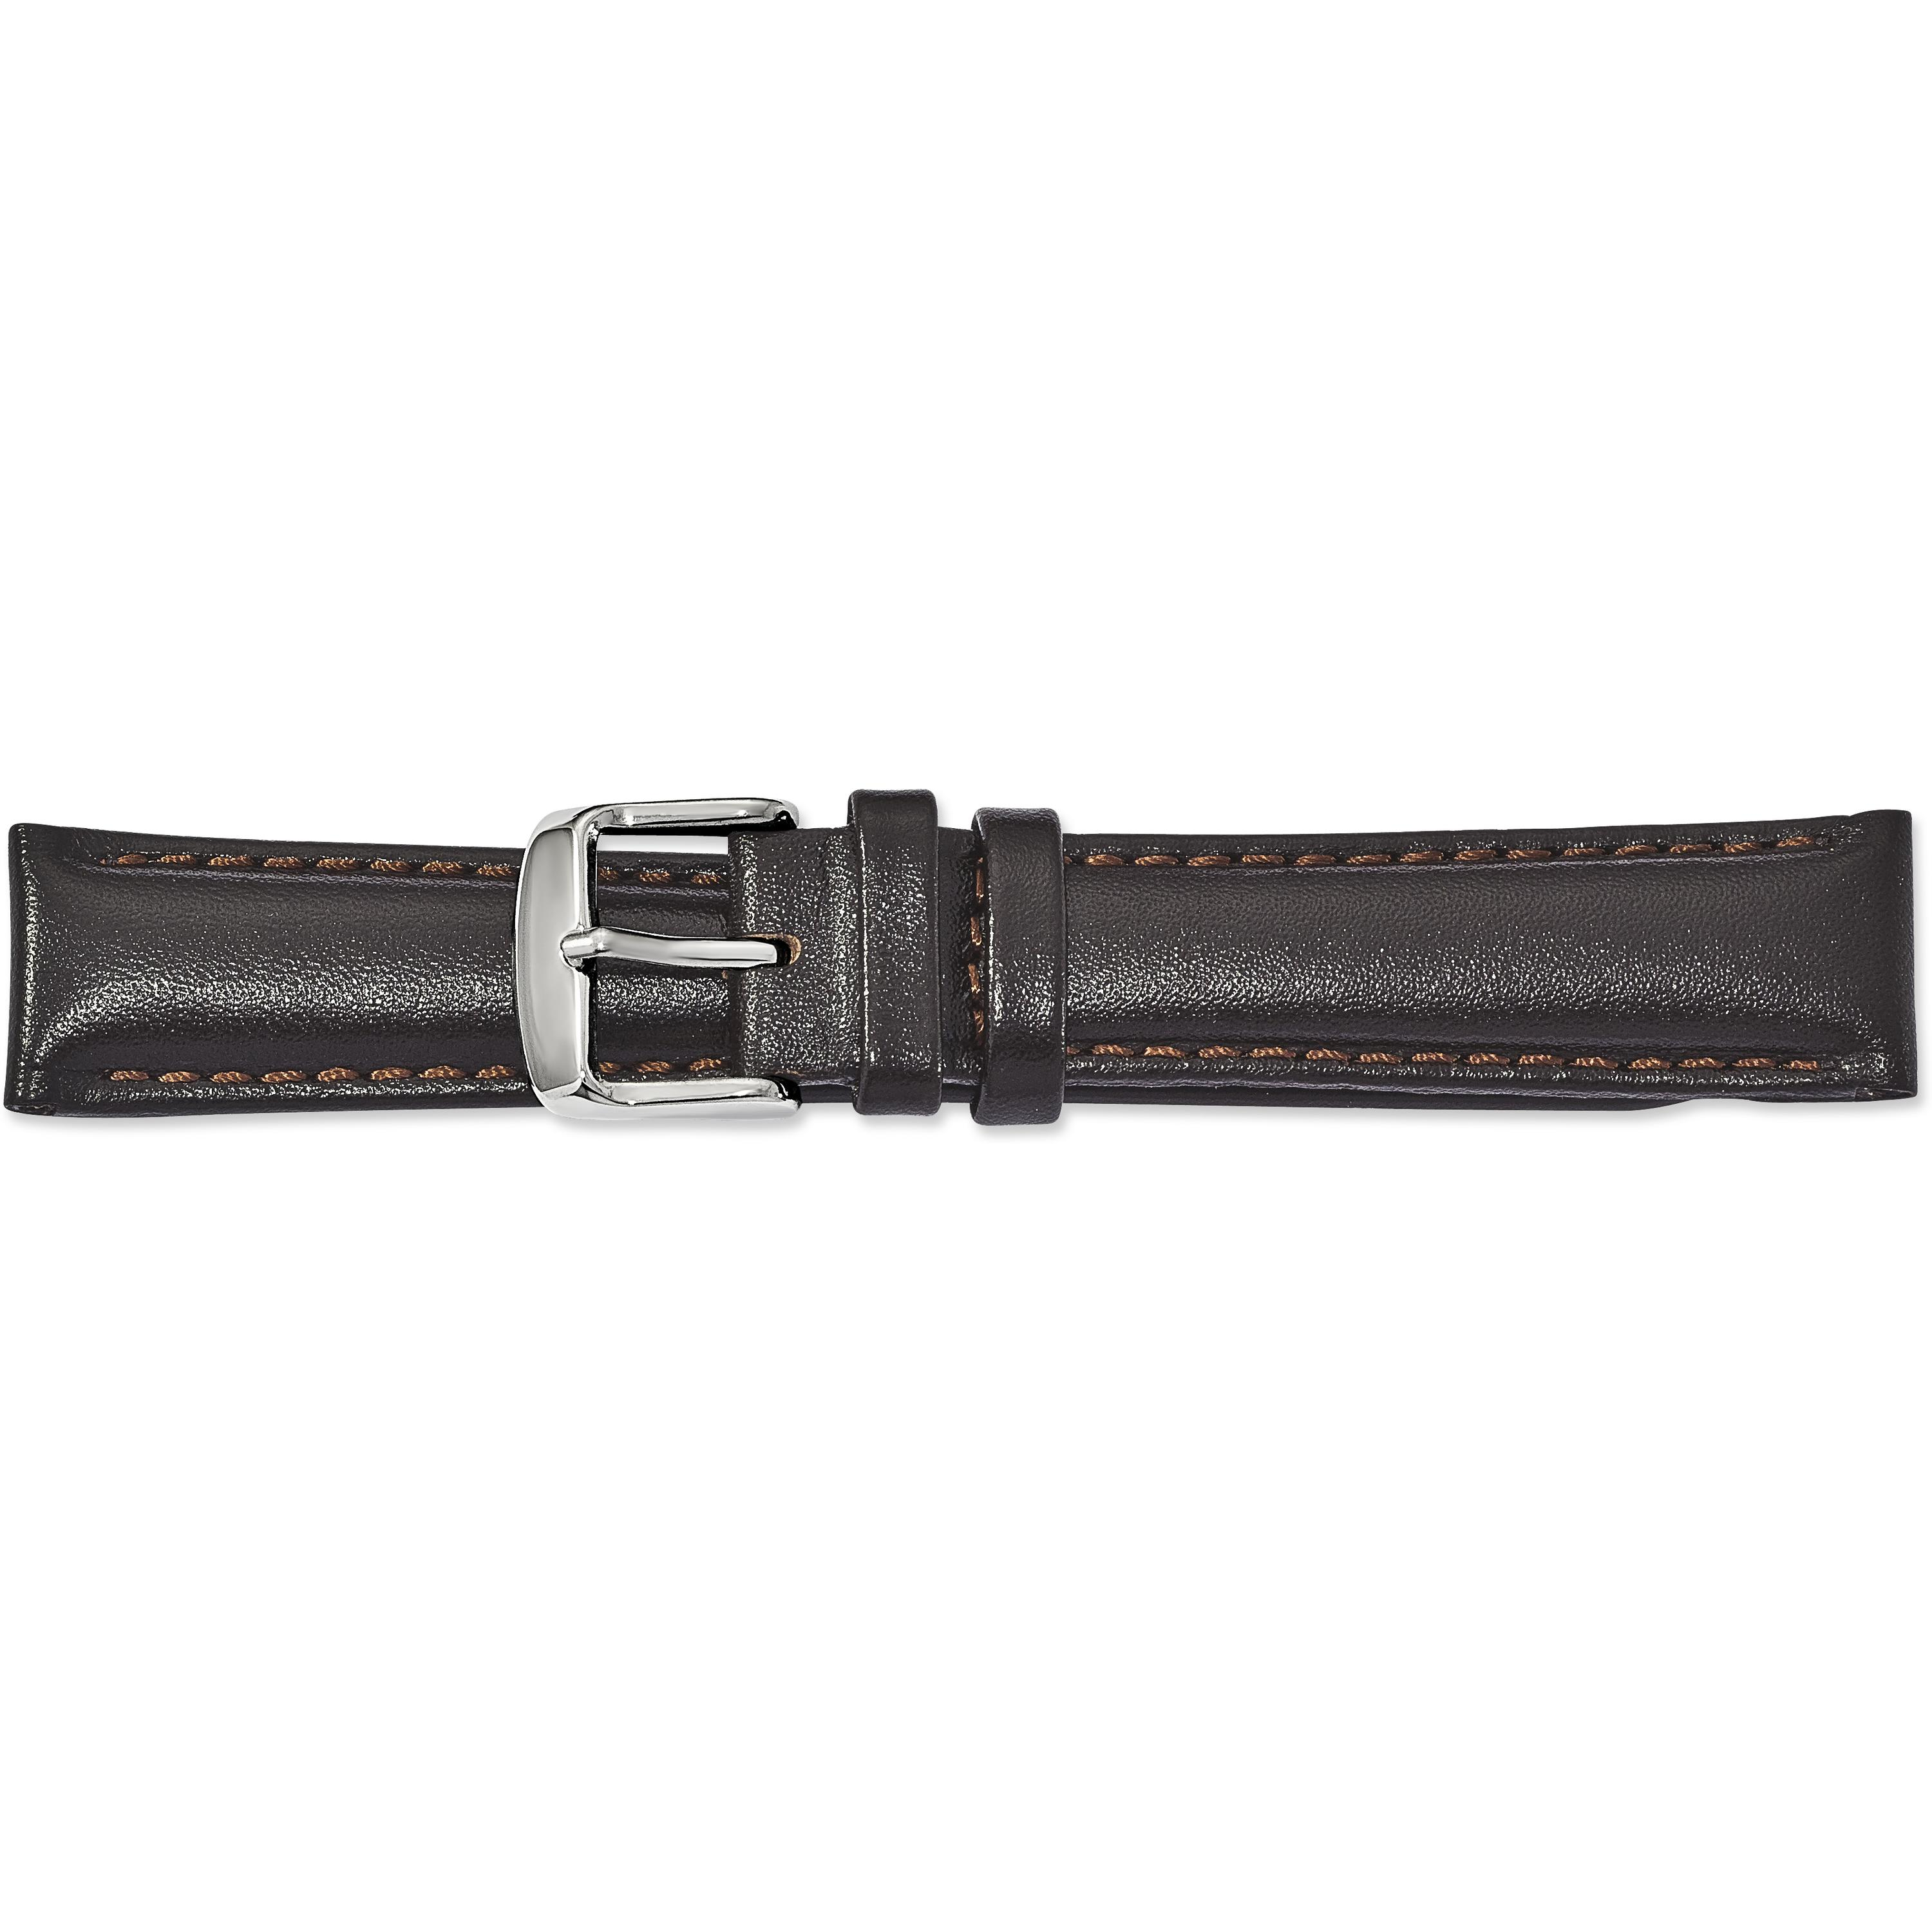 Findingking de Beer Brown Leather Watch Band 22mm at Sears.com